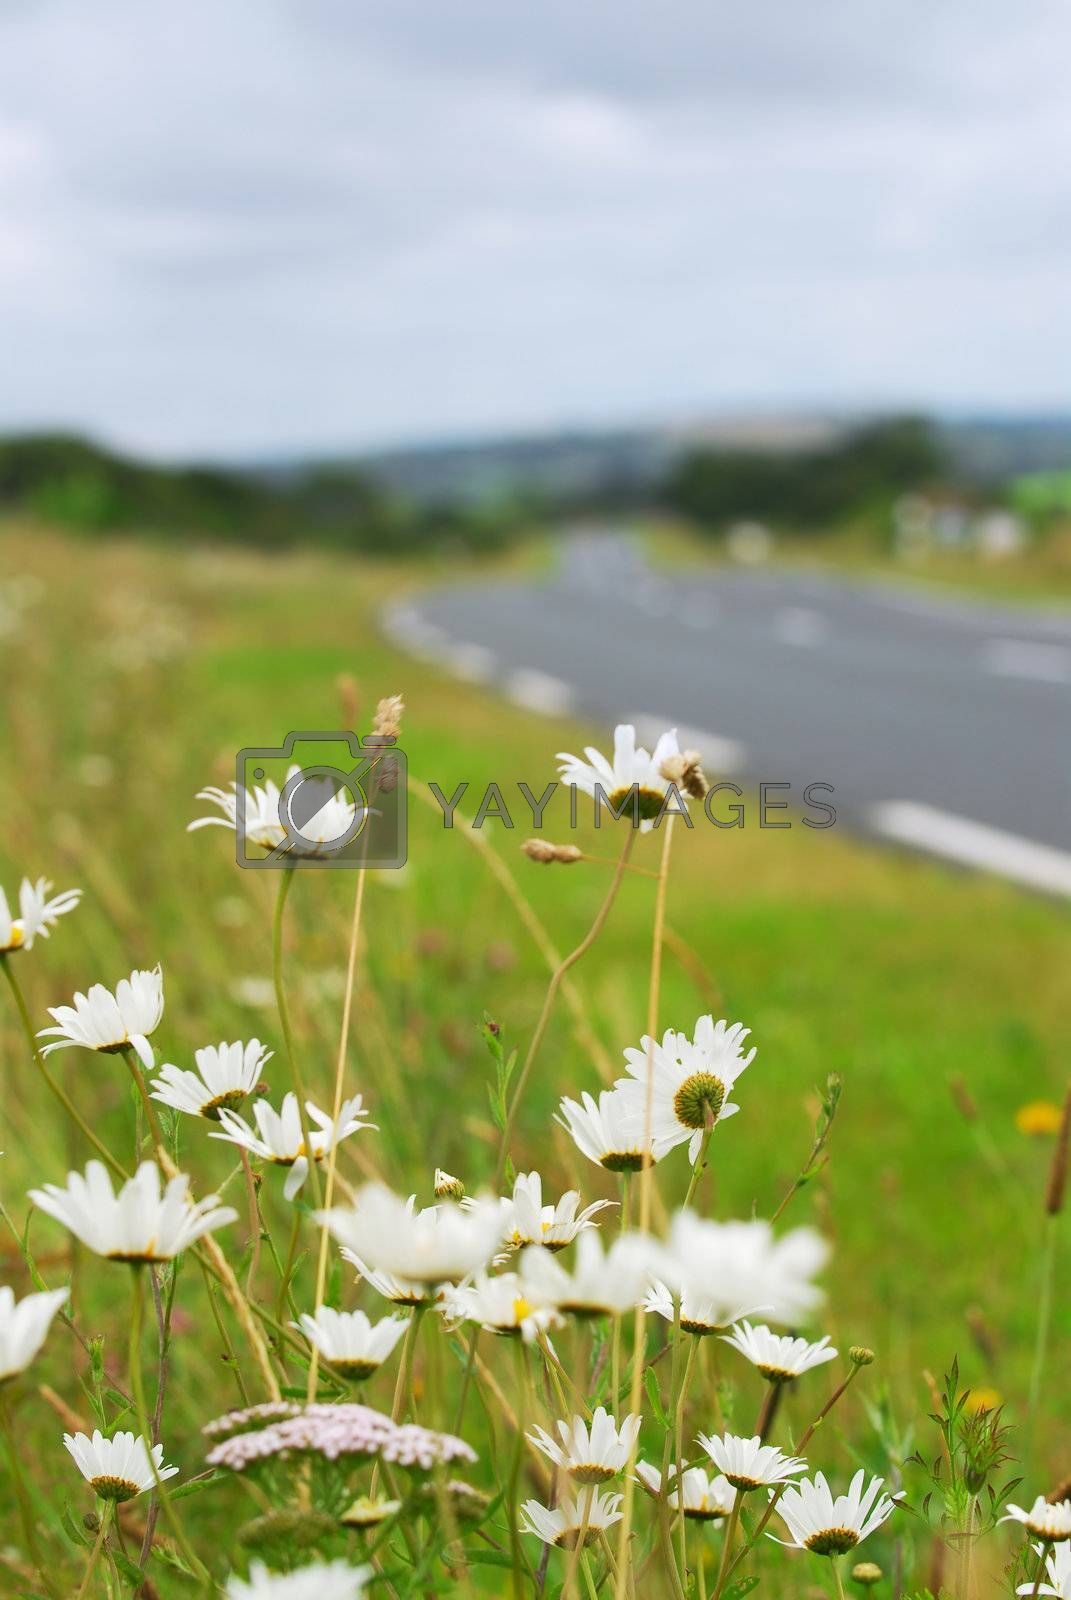 Wild daisies blooming on the side of a rural road in Brittany, France